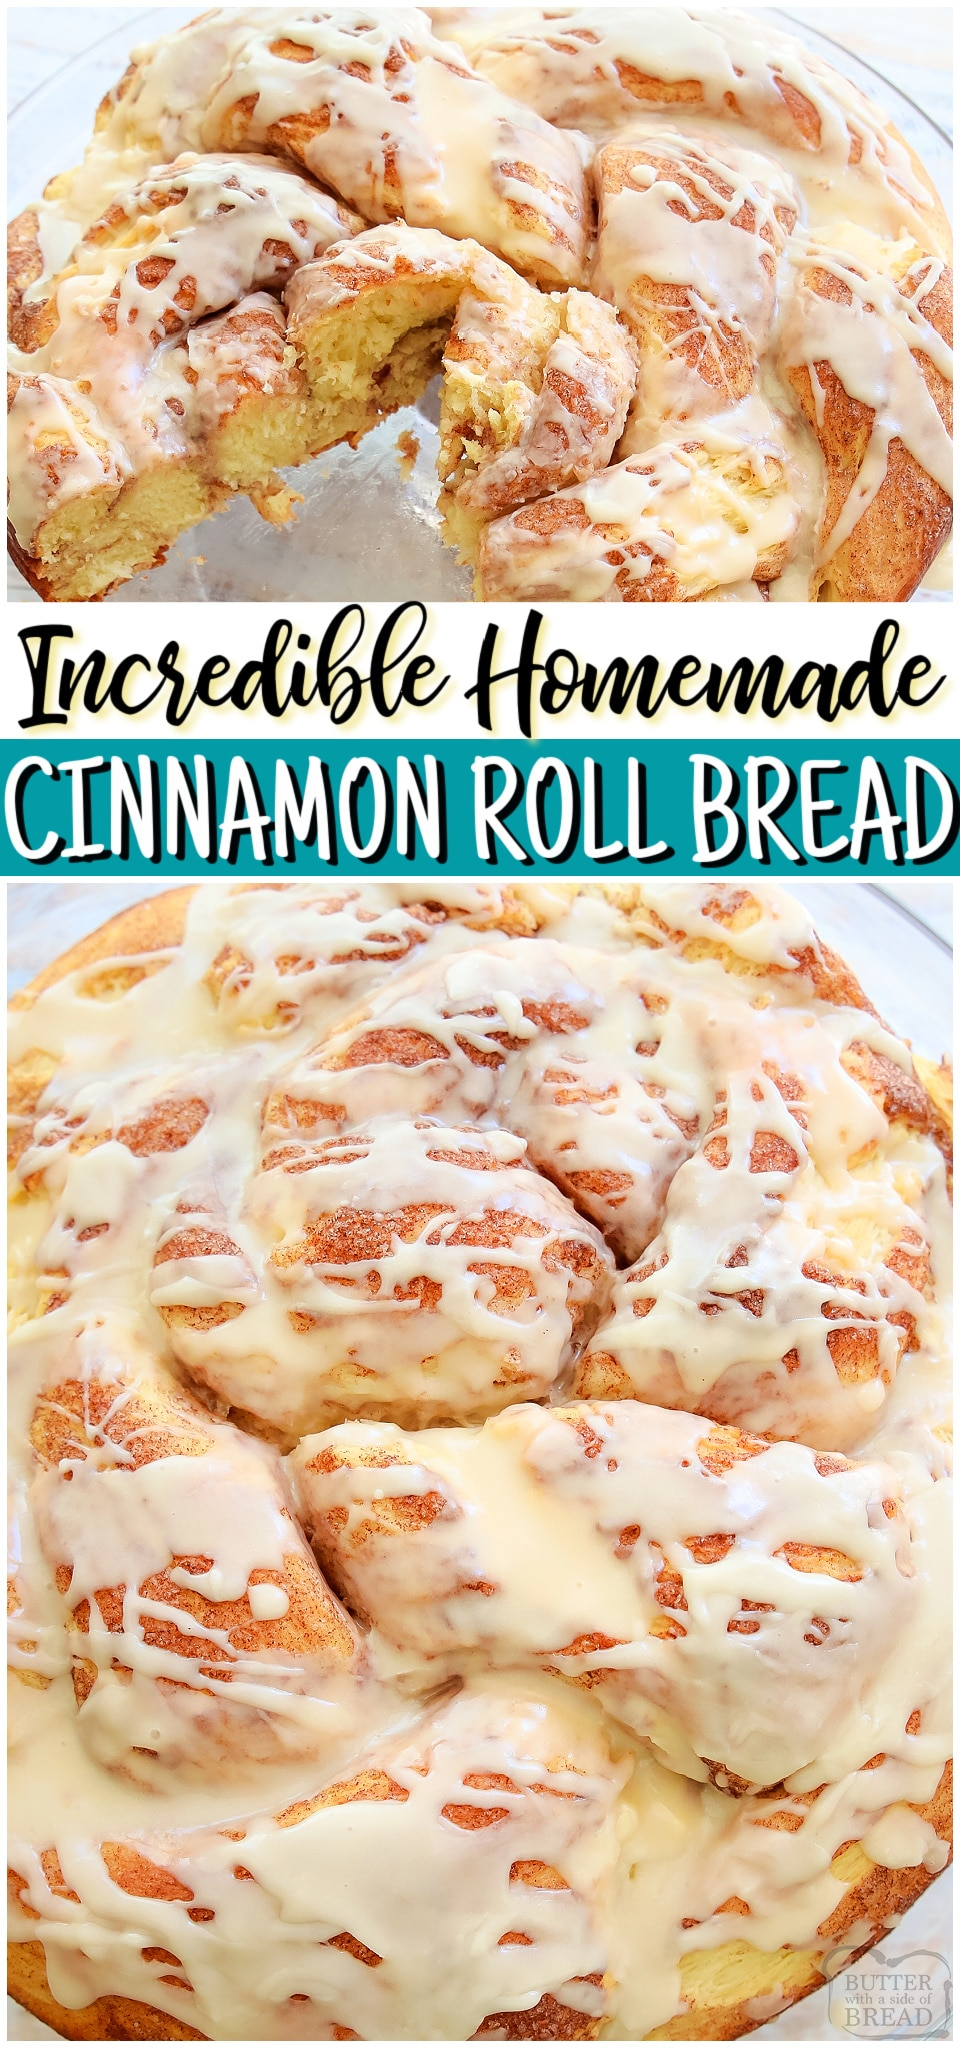 Homemade Cinnamon roll bread is everything we love about cinnamon rolls, in bread form! Simple, delicious sweet bread recipe with swirls of buttery cinnamon baked in tender bread dough & drizzled with an easy glaze. #cinnamonrolls #bread #baking #yeast #homemade #breakfast #easyrecipe from BUTTER WITH A SIDE OF BREAD